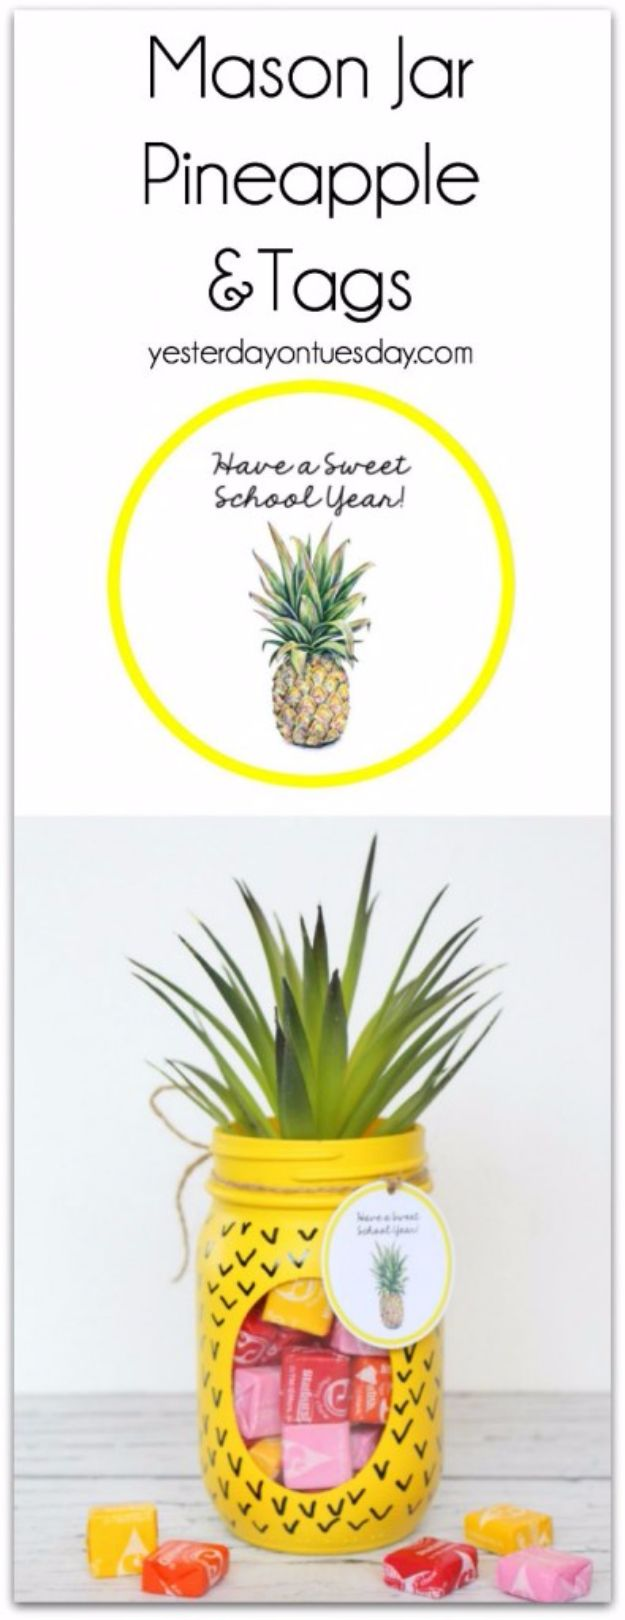 Free Printables for Mason Jars - Mason Jar Pineapple And Tags - Best Ideas for Tags and Printable Clip Art for Fun Mason Jar Gifts and Organization#masonjar #crafts #printables